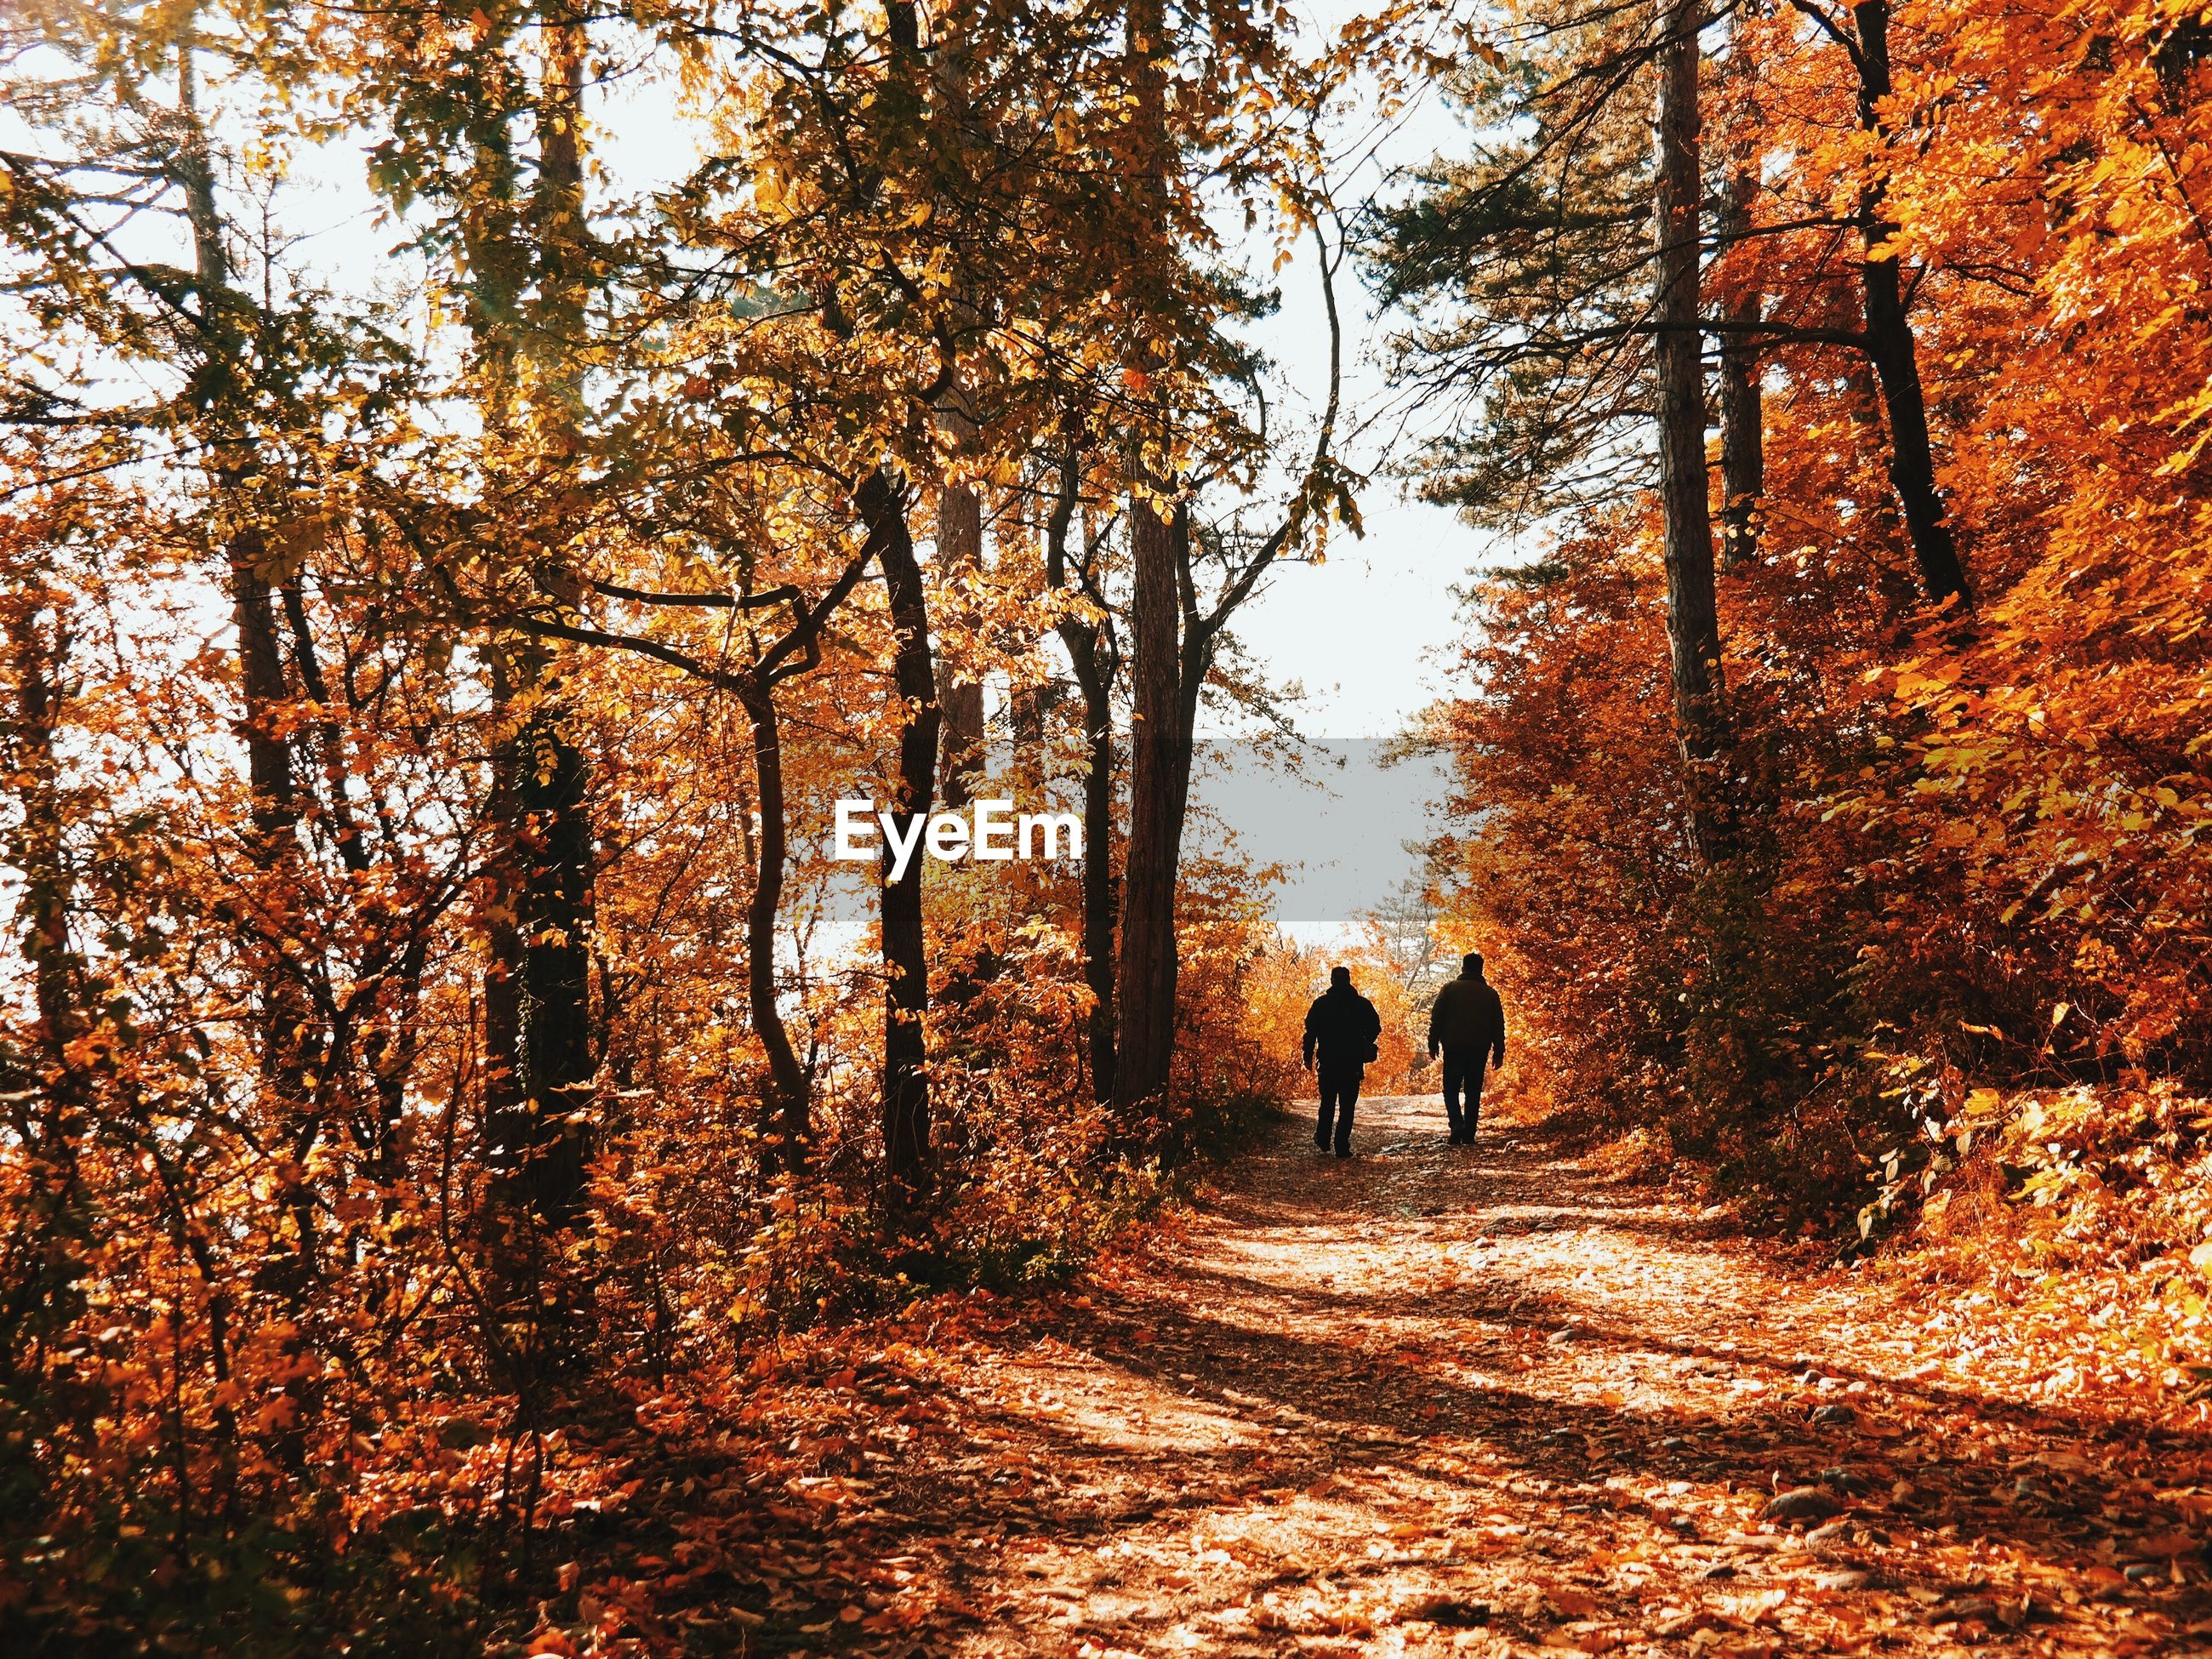 Two people walking on country road along trees